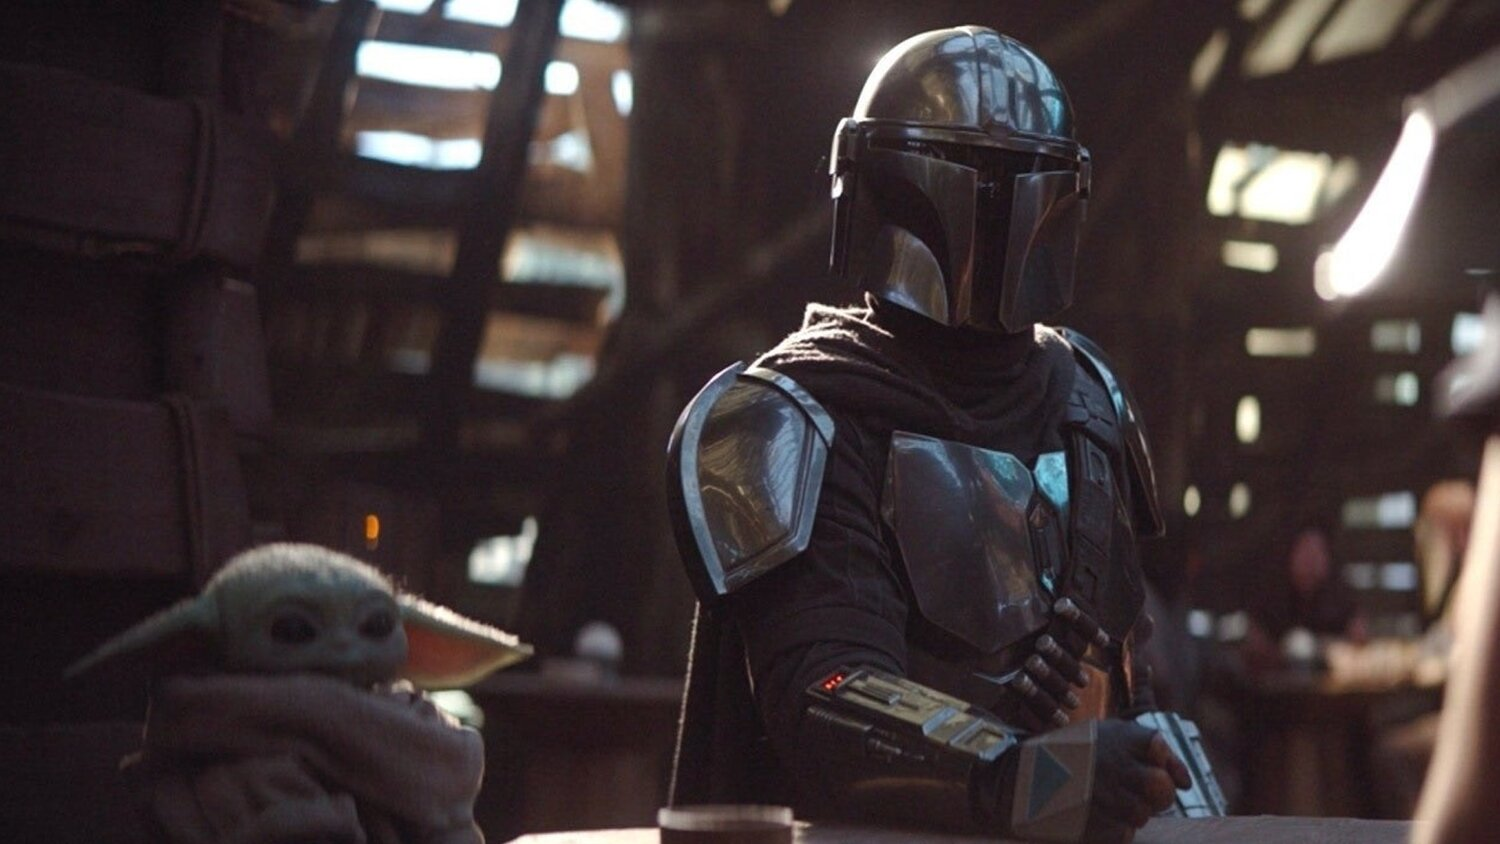 George Lucas Wanted To Shoot His Star Wars Series And Sequel Trilogy Using The Mandalorian Stagecraft Technology Geektyrant